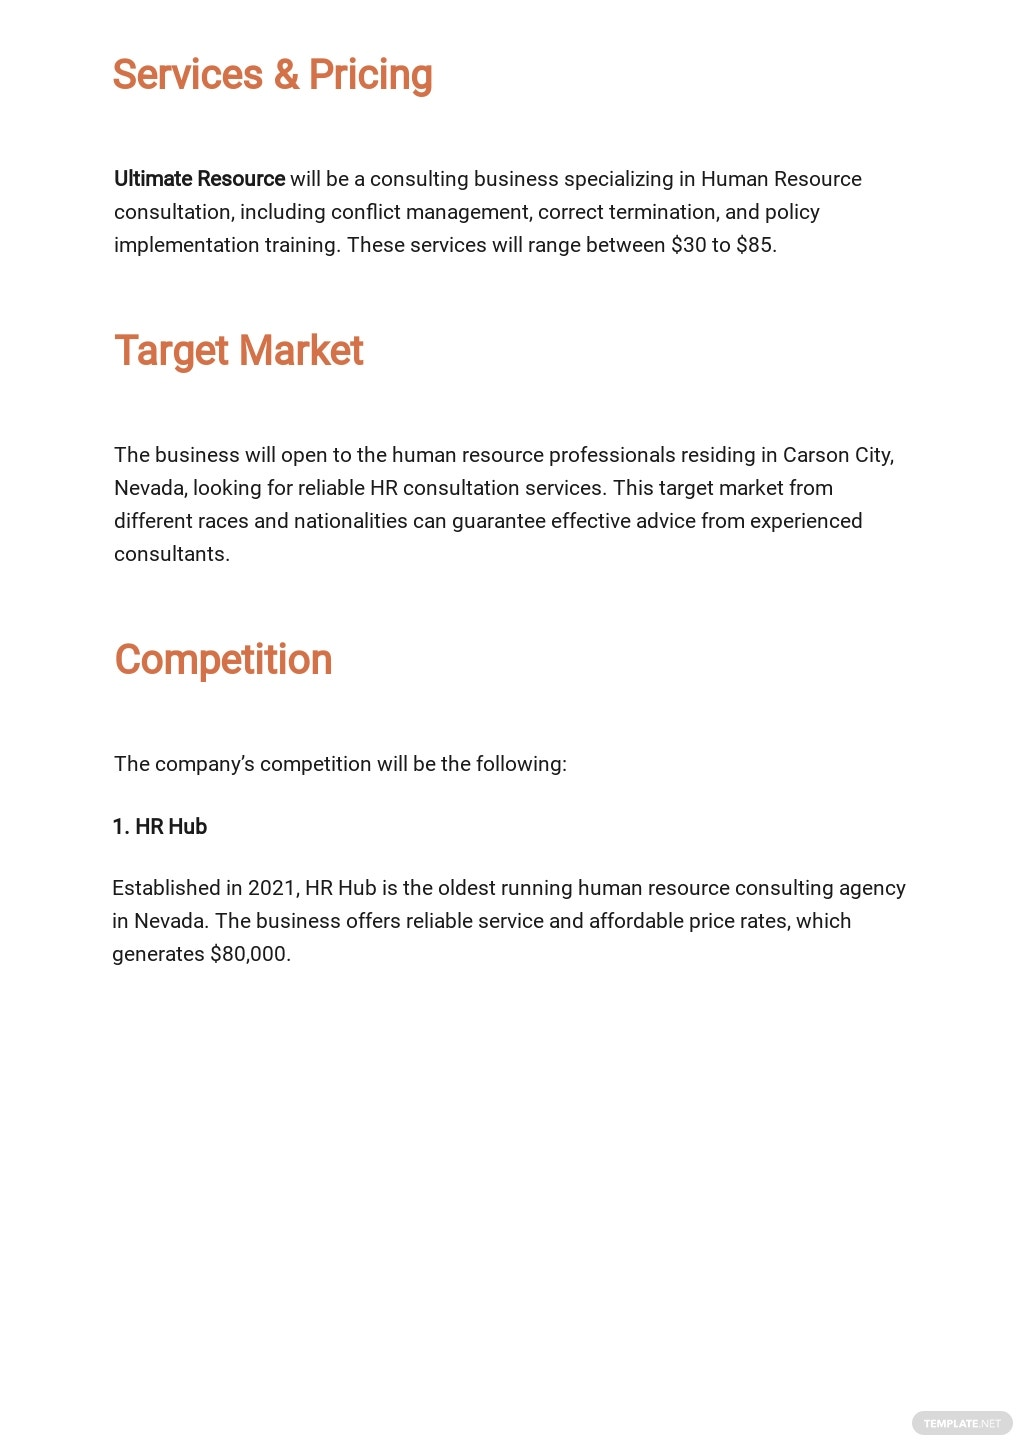 Human Resources Consulting Business Plan Template 2.jpe